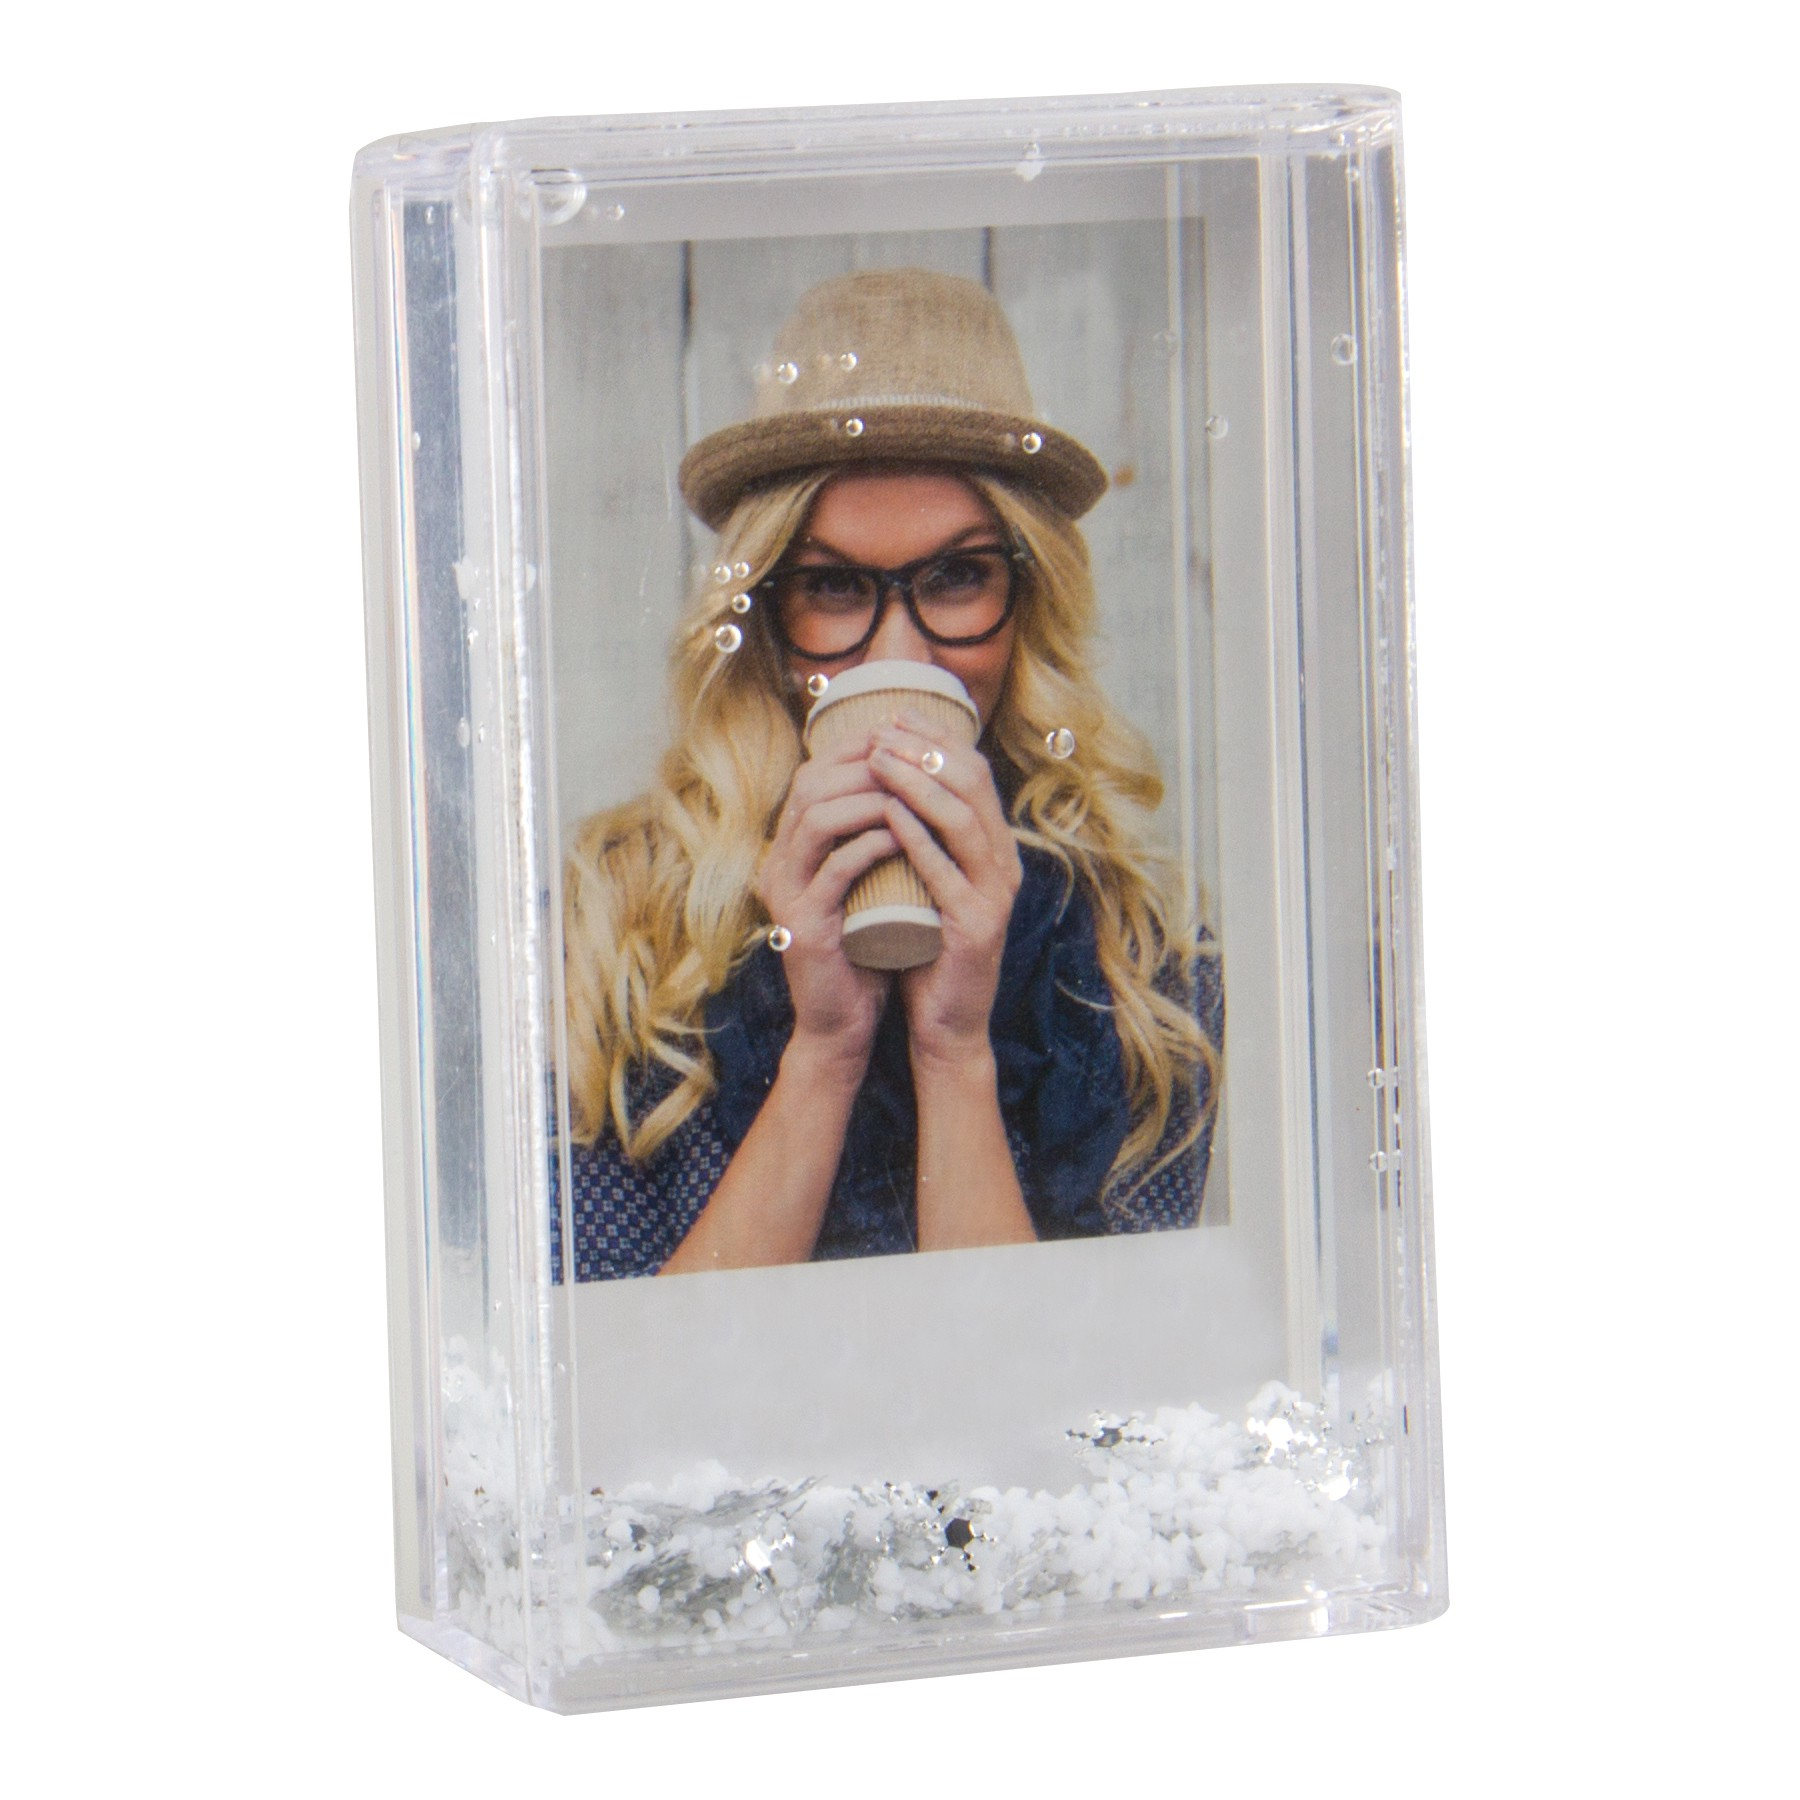 Amazoncom Neil Enterprises Inc Fujifilm Instax Mini Snow Frame 1